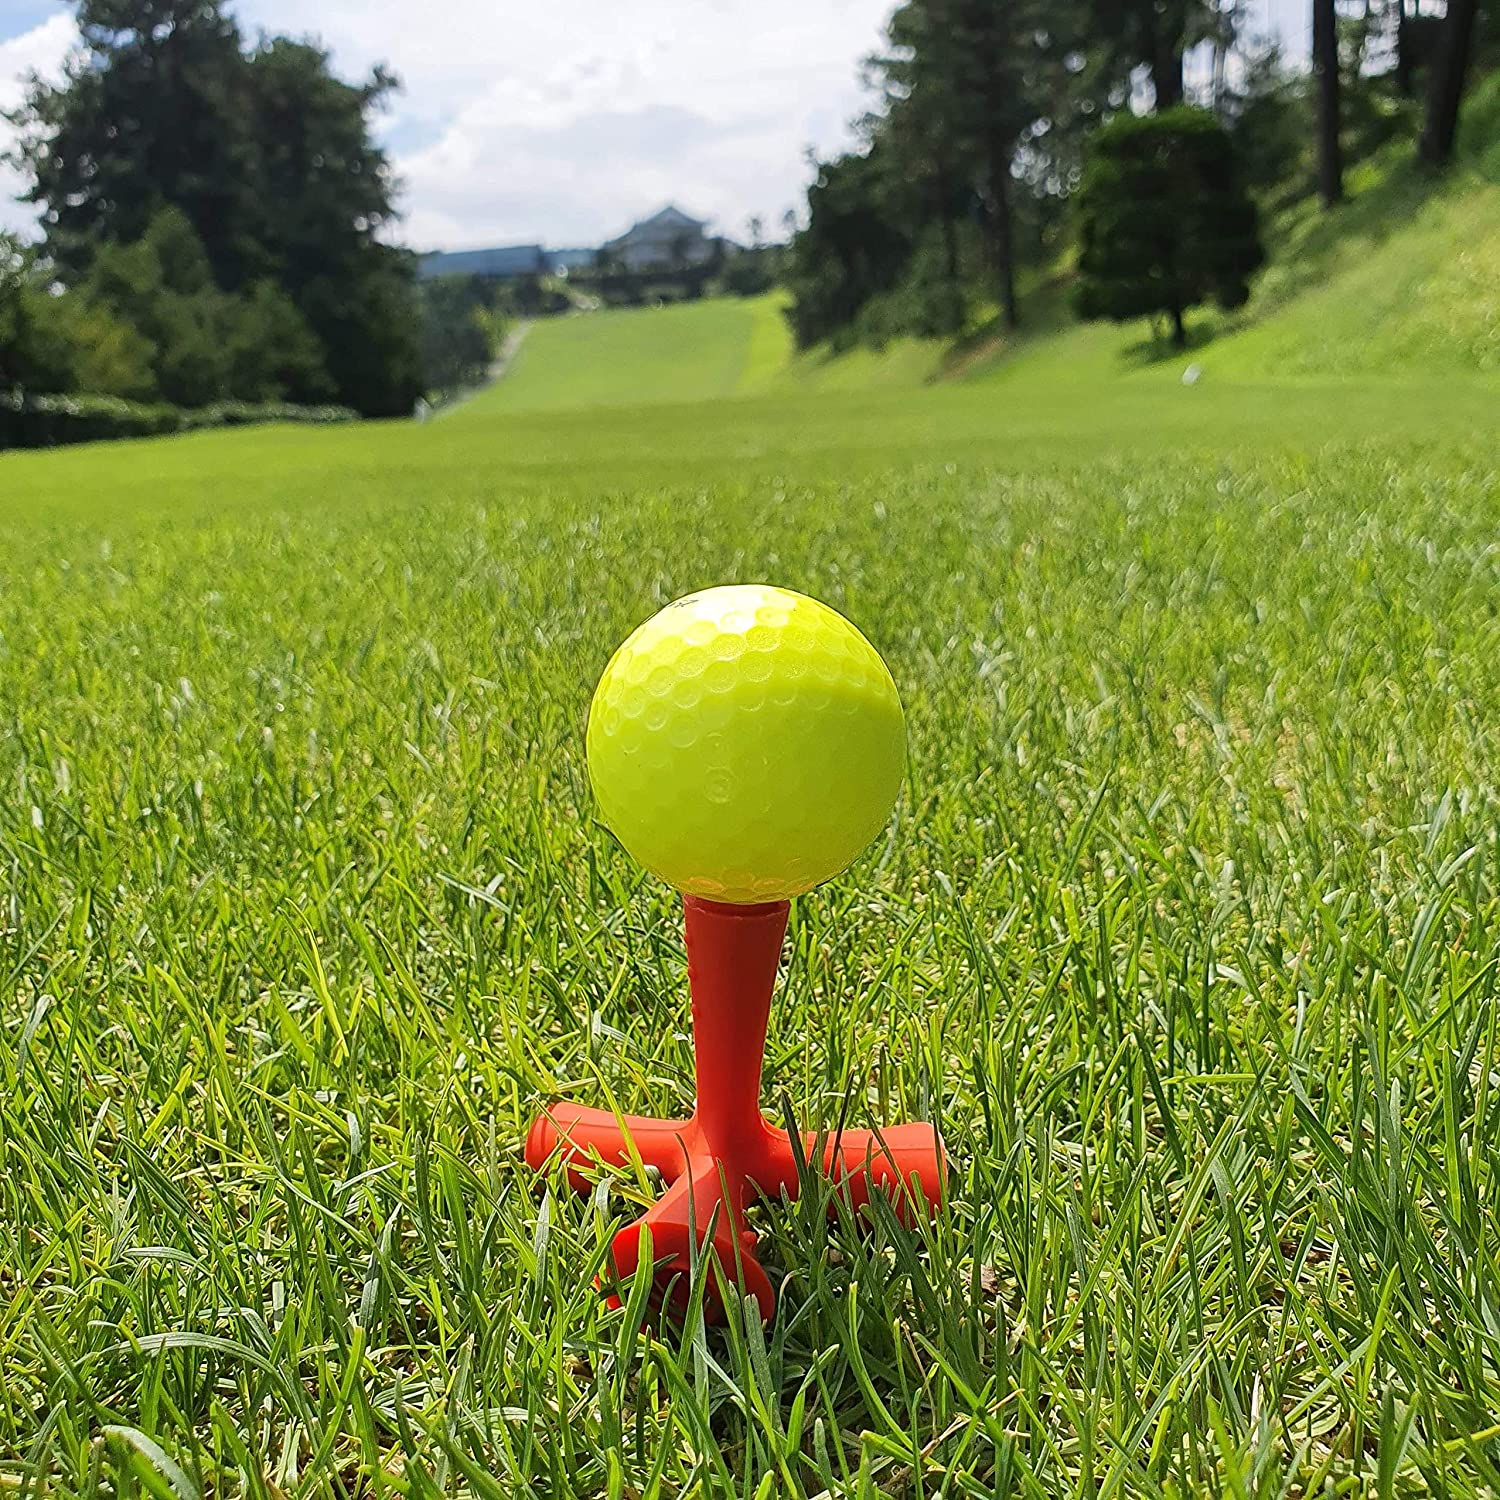 OctoTee Golf Tee, Flexible Tripod Colorful Rubber Golf Tee